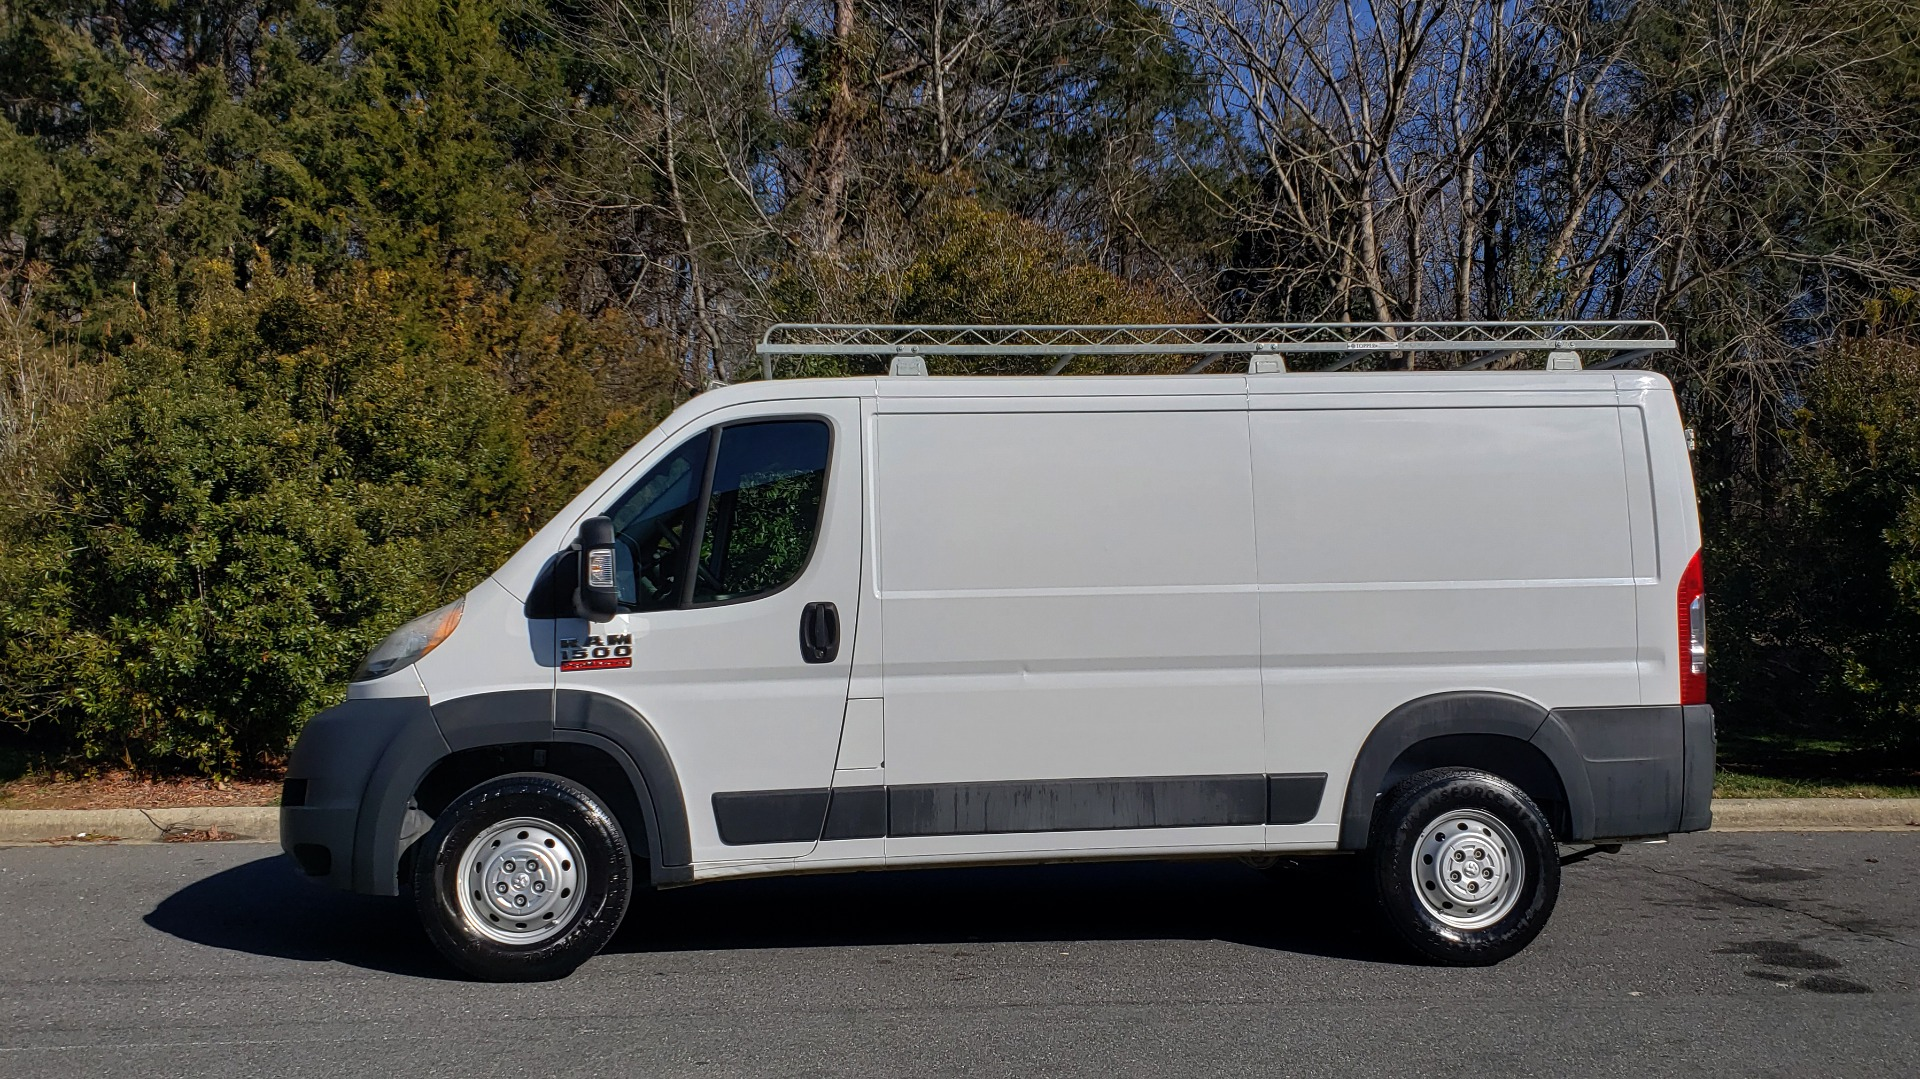 Used 2016 Ram PROMASTER CARGO VAN 136 WB / LOW ROOF / 3.6L V6 / 6-SPD AUTO / REARVIEW for sale $21,000 at Formula Imports in Charlotte NC 28227 2